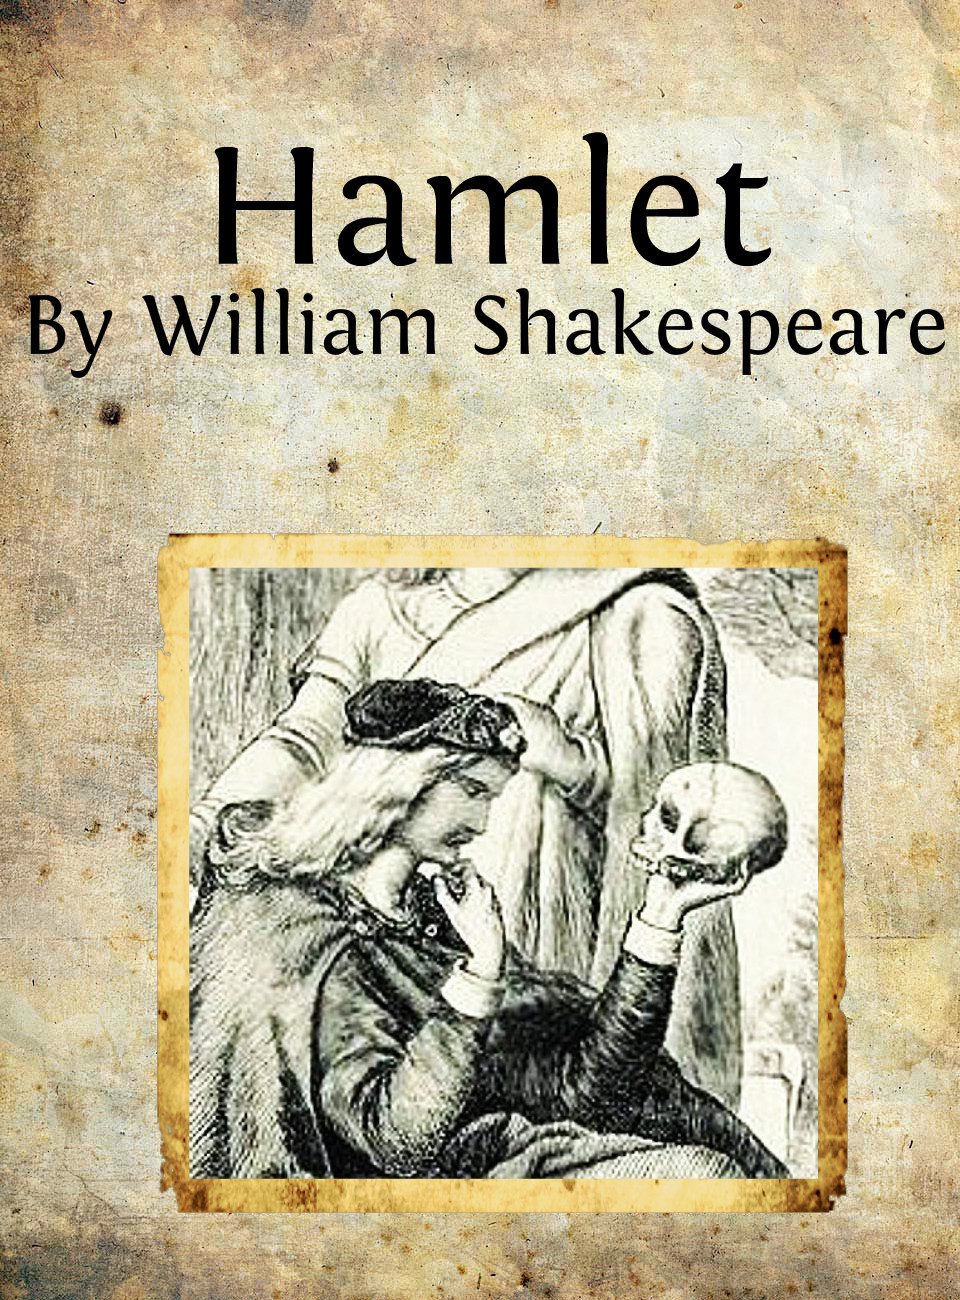 an analysis of foils of hamlet in the play hamlet by william shakespeare In this play three sons have lost their fathers hamlet and ophelia are  the  common theme, as claudius says in another context, is 'death of fathers'  shakespeare presents all three avengers in sharp contrast to hamlet,  the  three avengers then, pyrrhus, fortinbras and laertes, are all foils to hamlet.